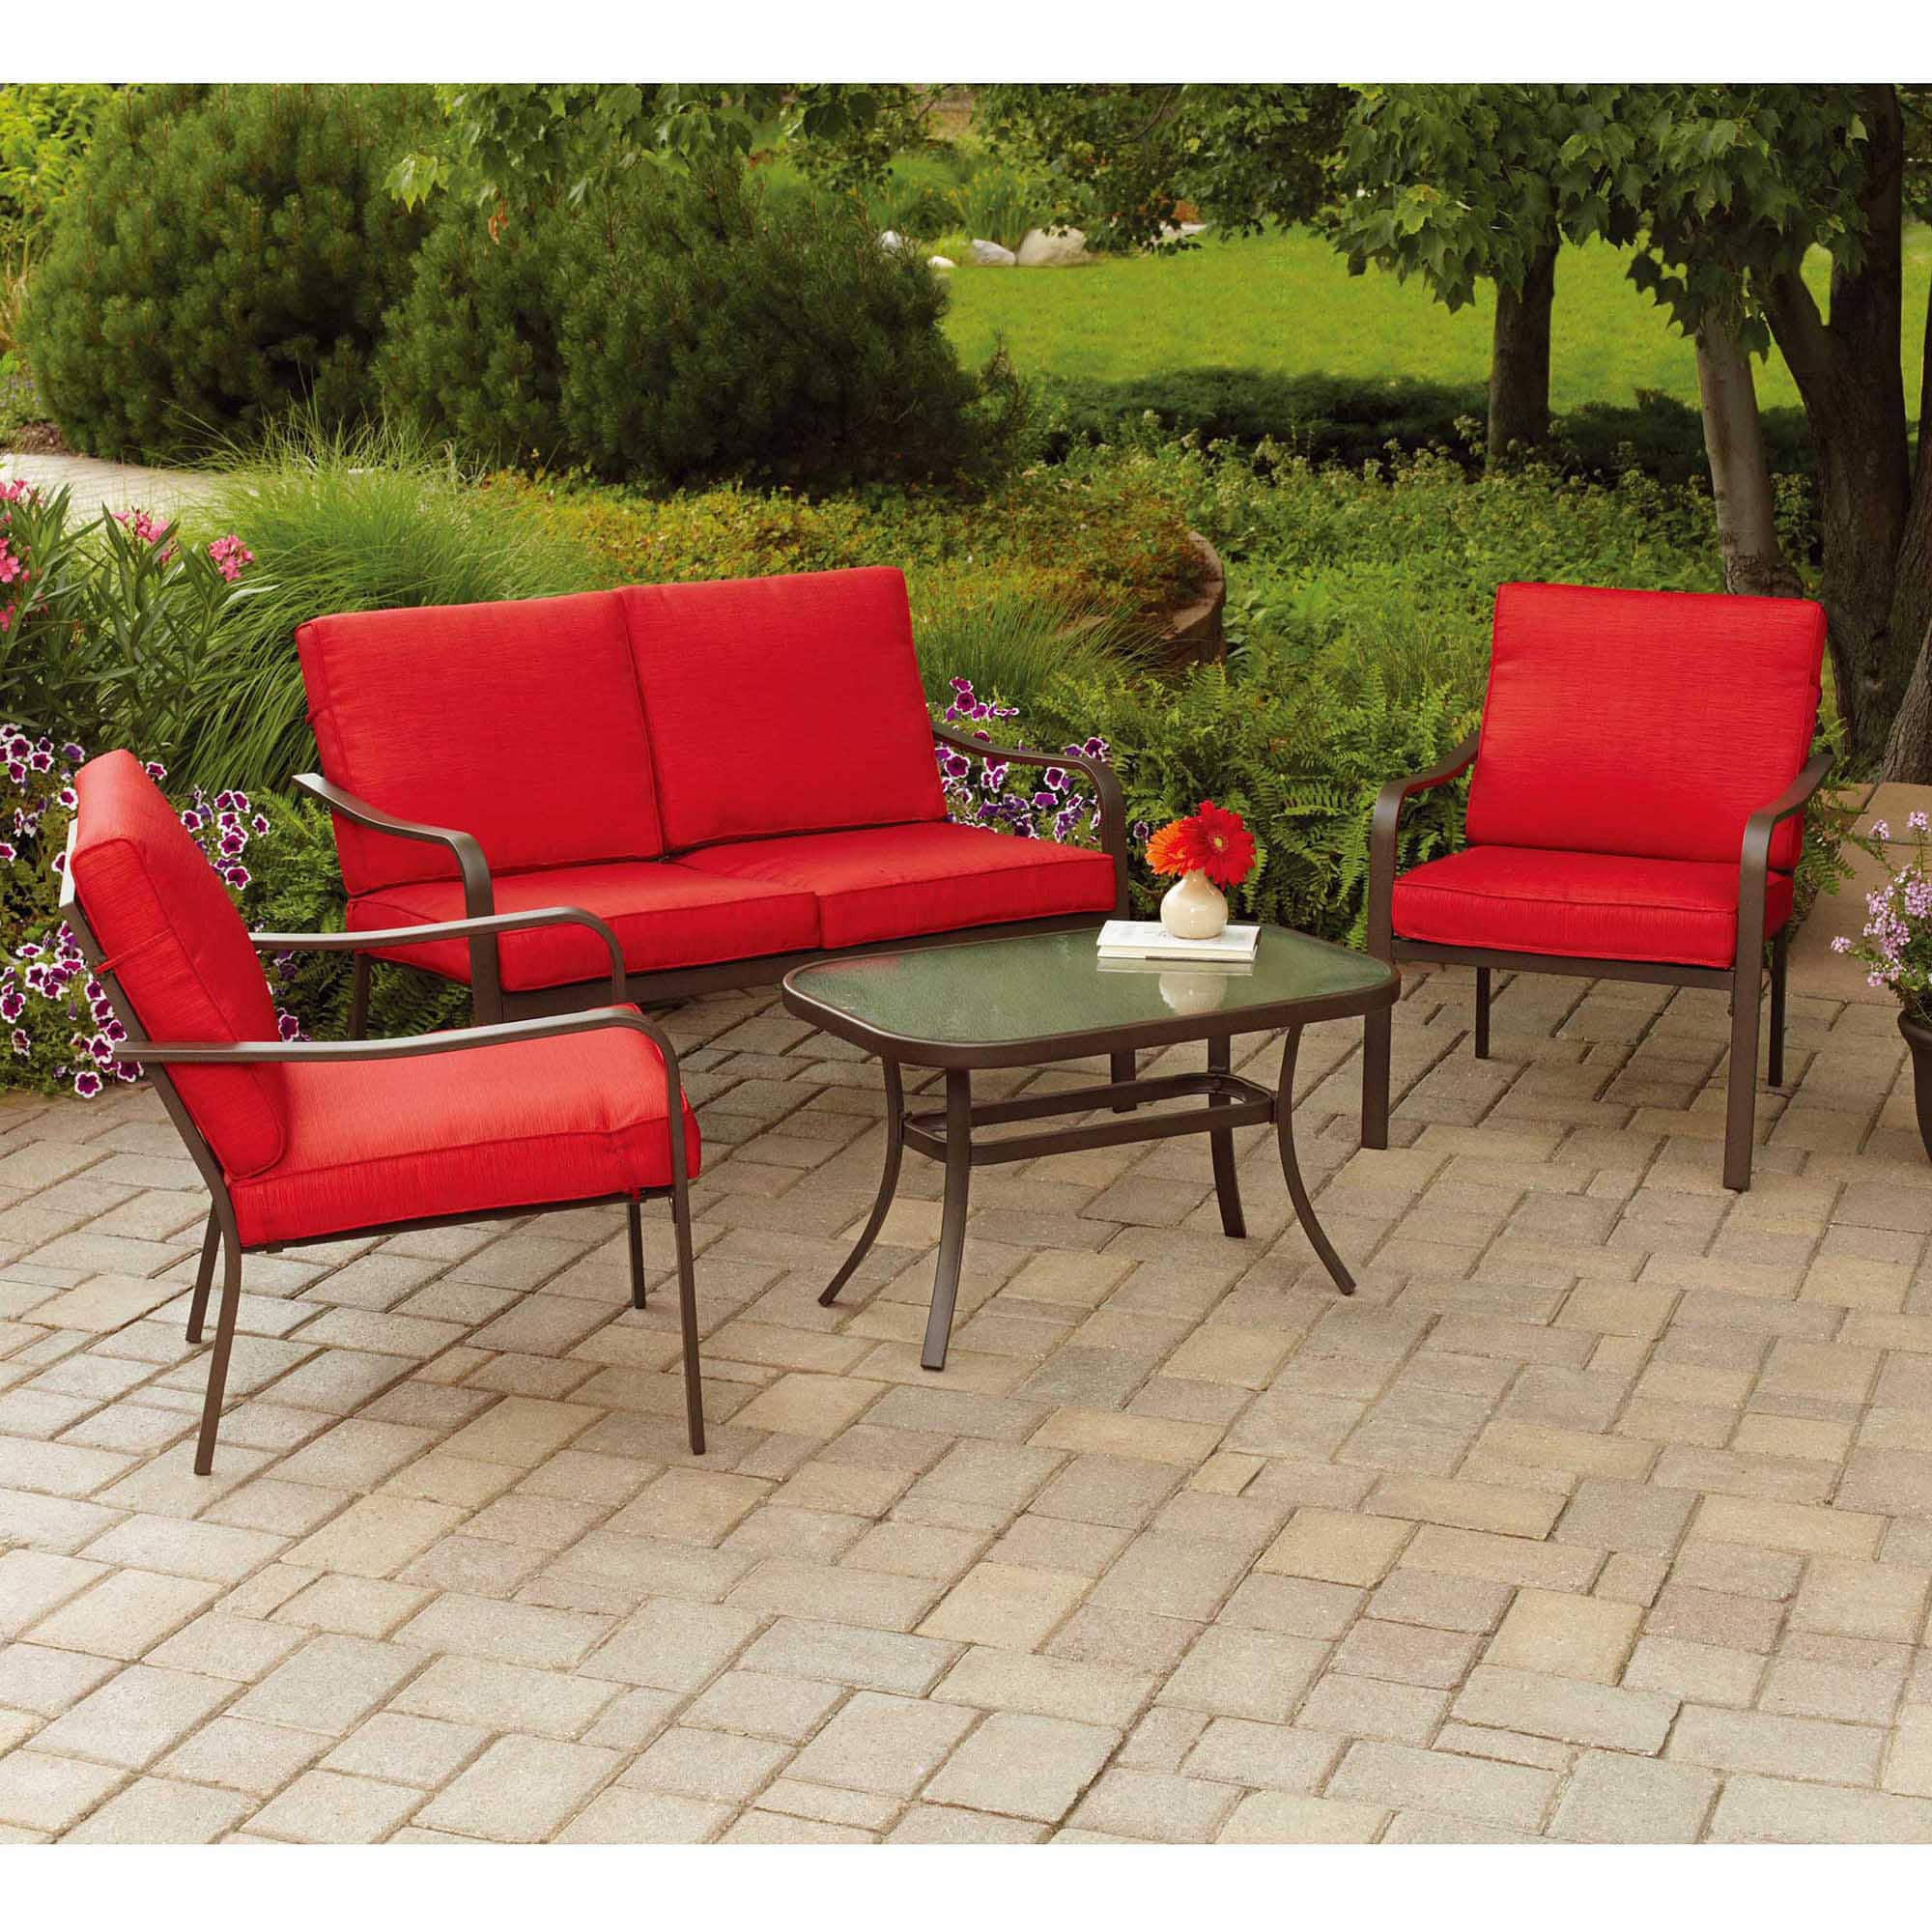 Walmart: Mainstays Stanton Cushioned 4-Piece Patio Conversation Set (Tan) $149 + Free Shipping